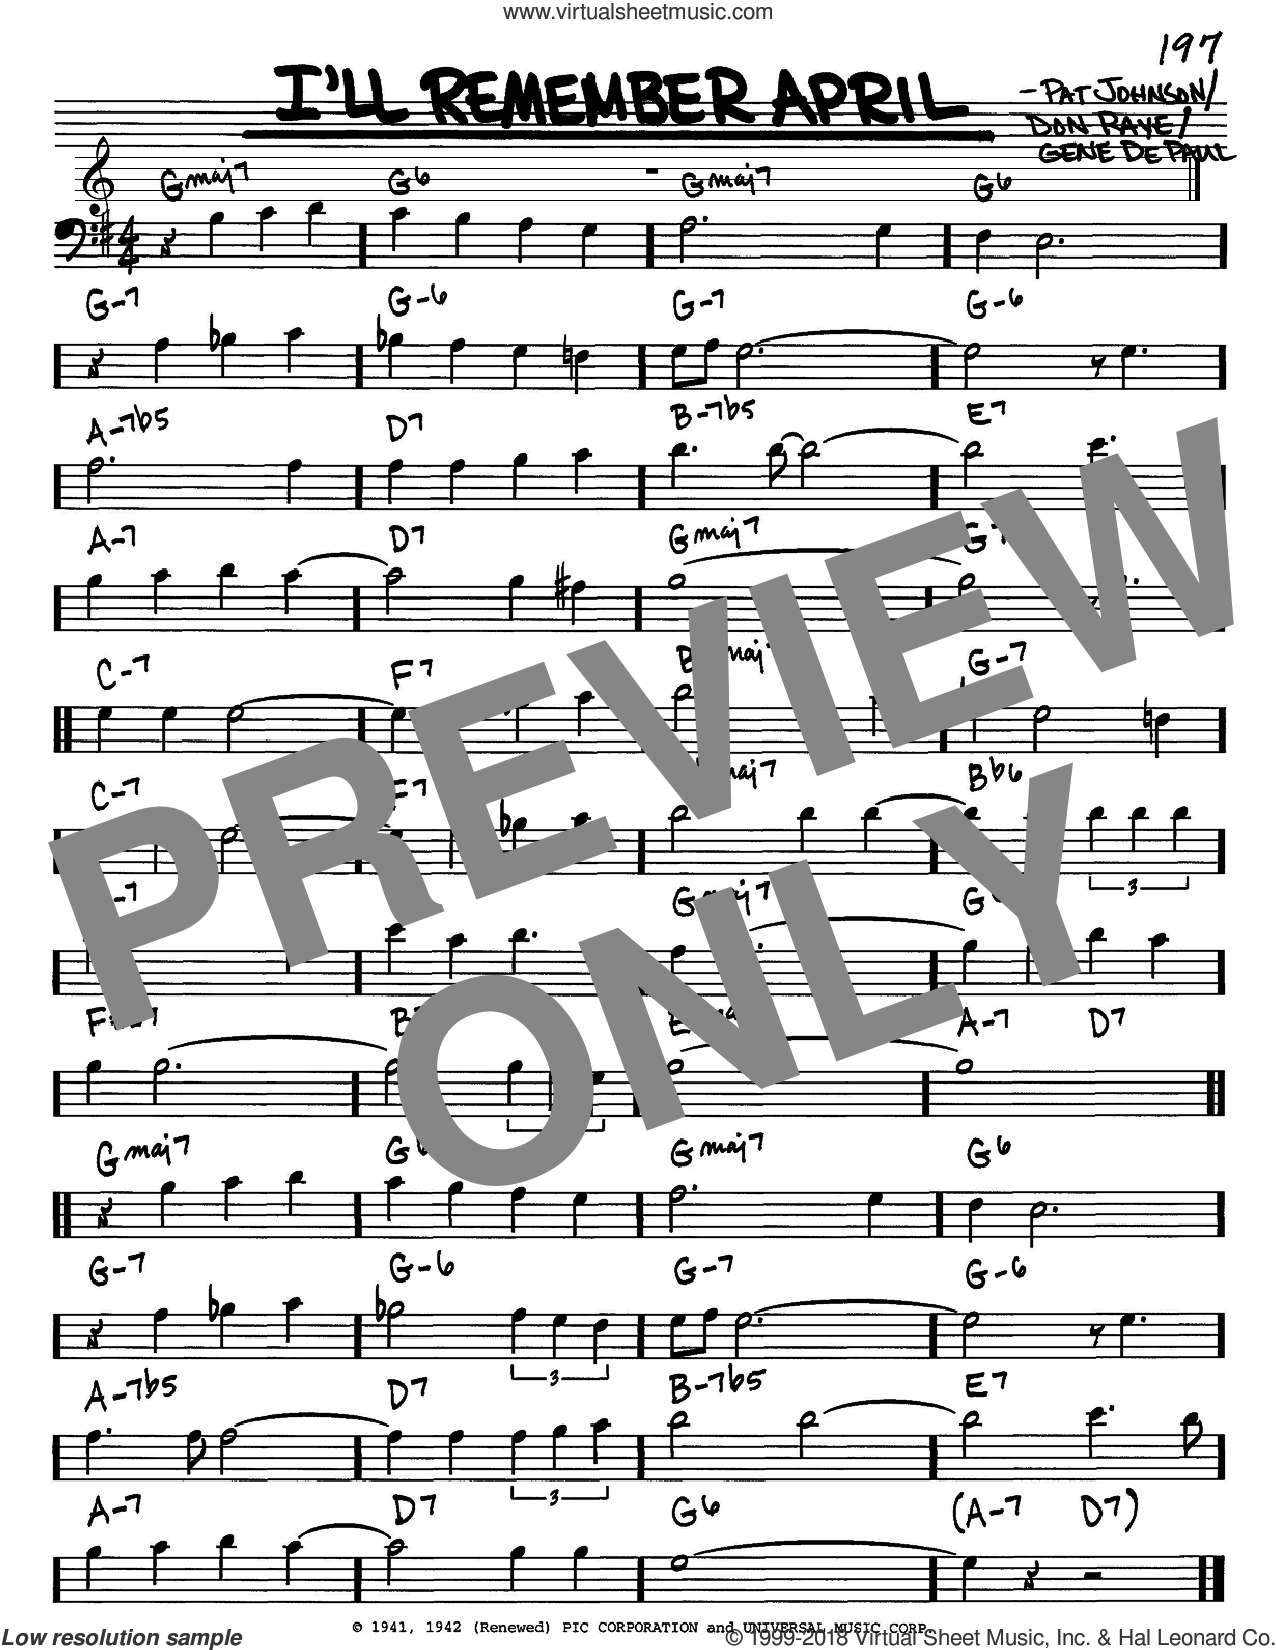 I'll Remember April sheet music for voice and other instruments (bass clef) by Woody Herman, Don Raye, Gene DePaul and Pat Johnson, intermediate skill level